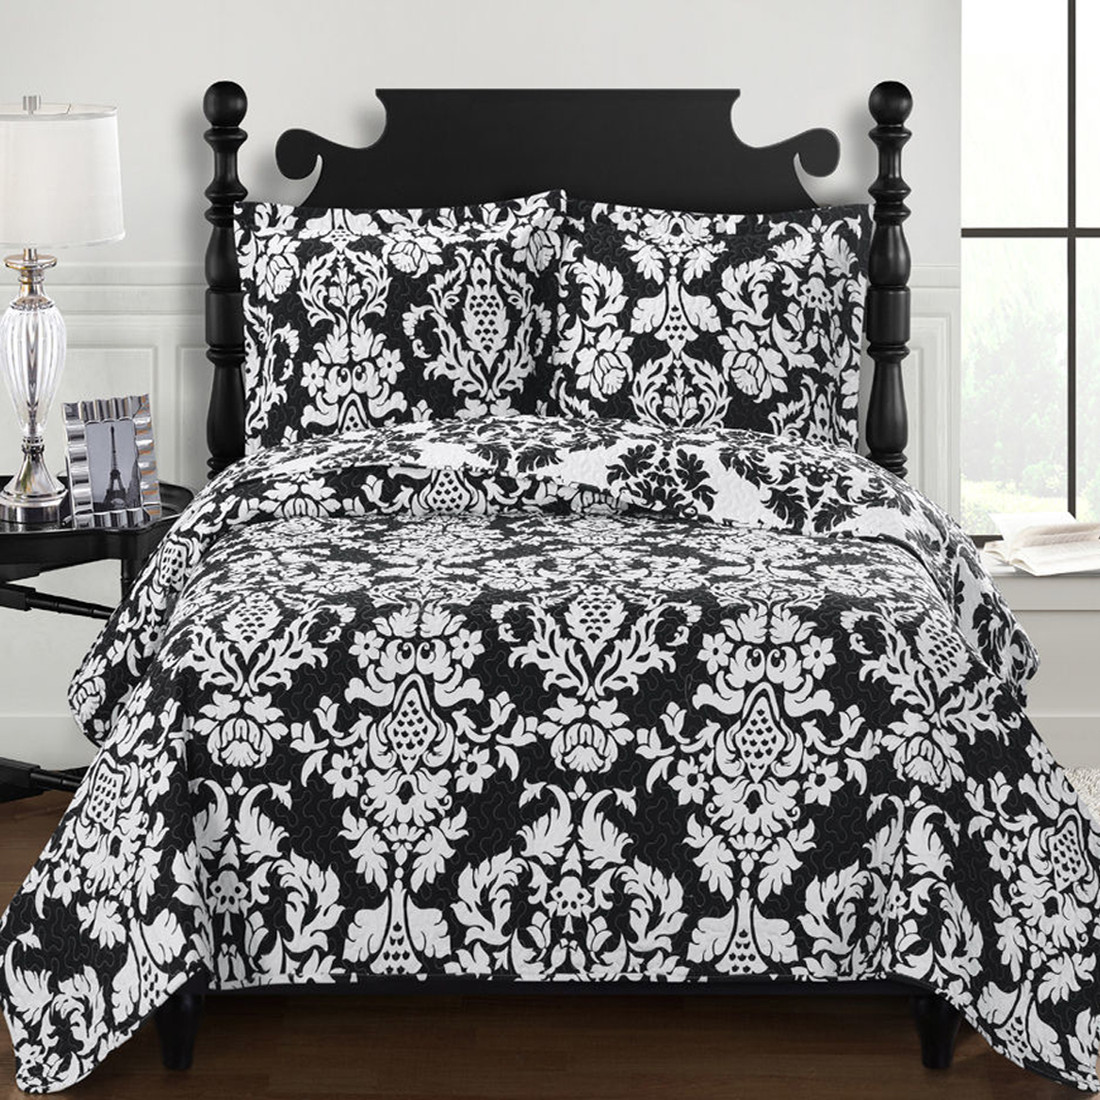 Catherine Oversized King Quilts Or Queen Size Reversible